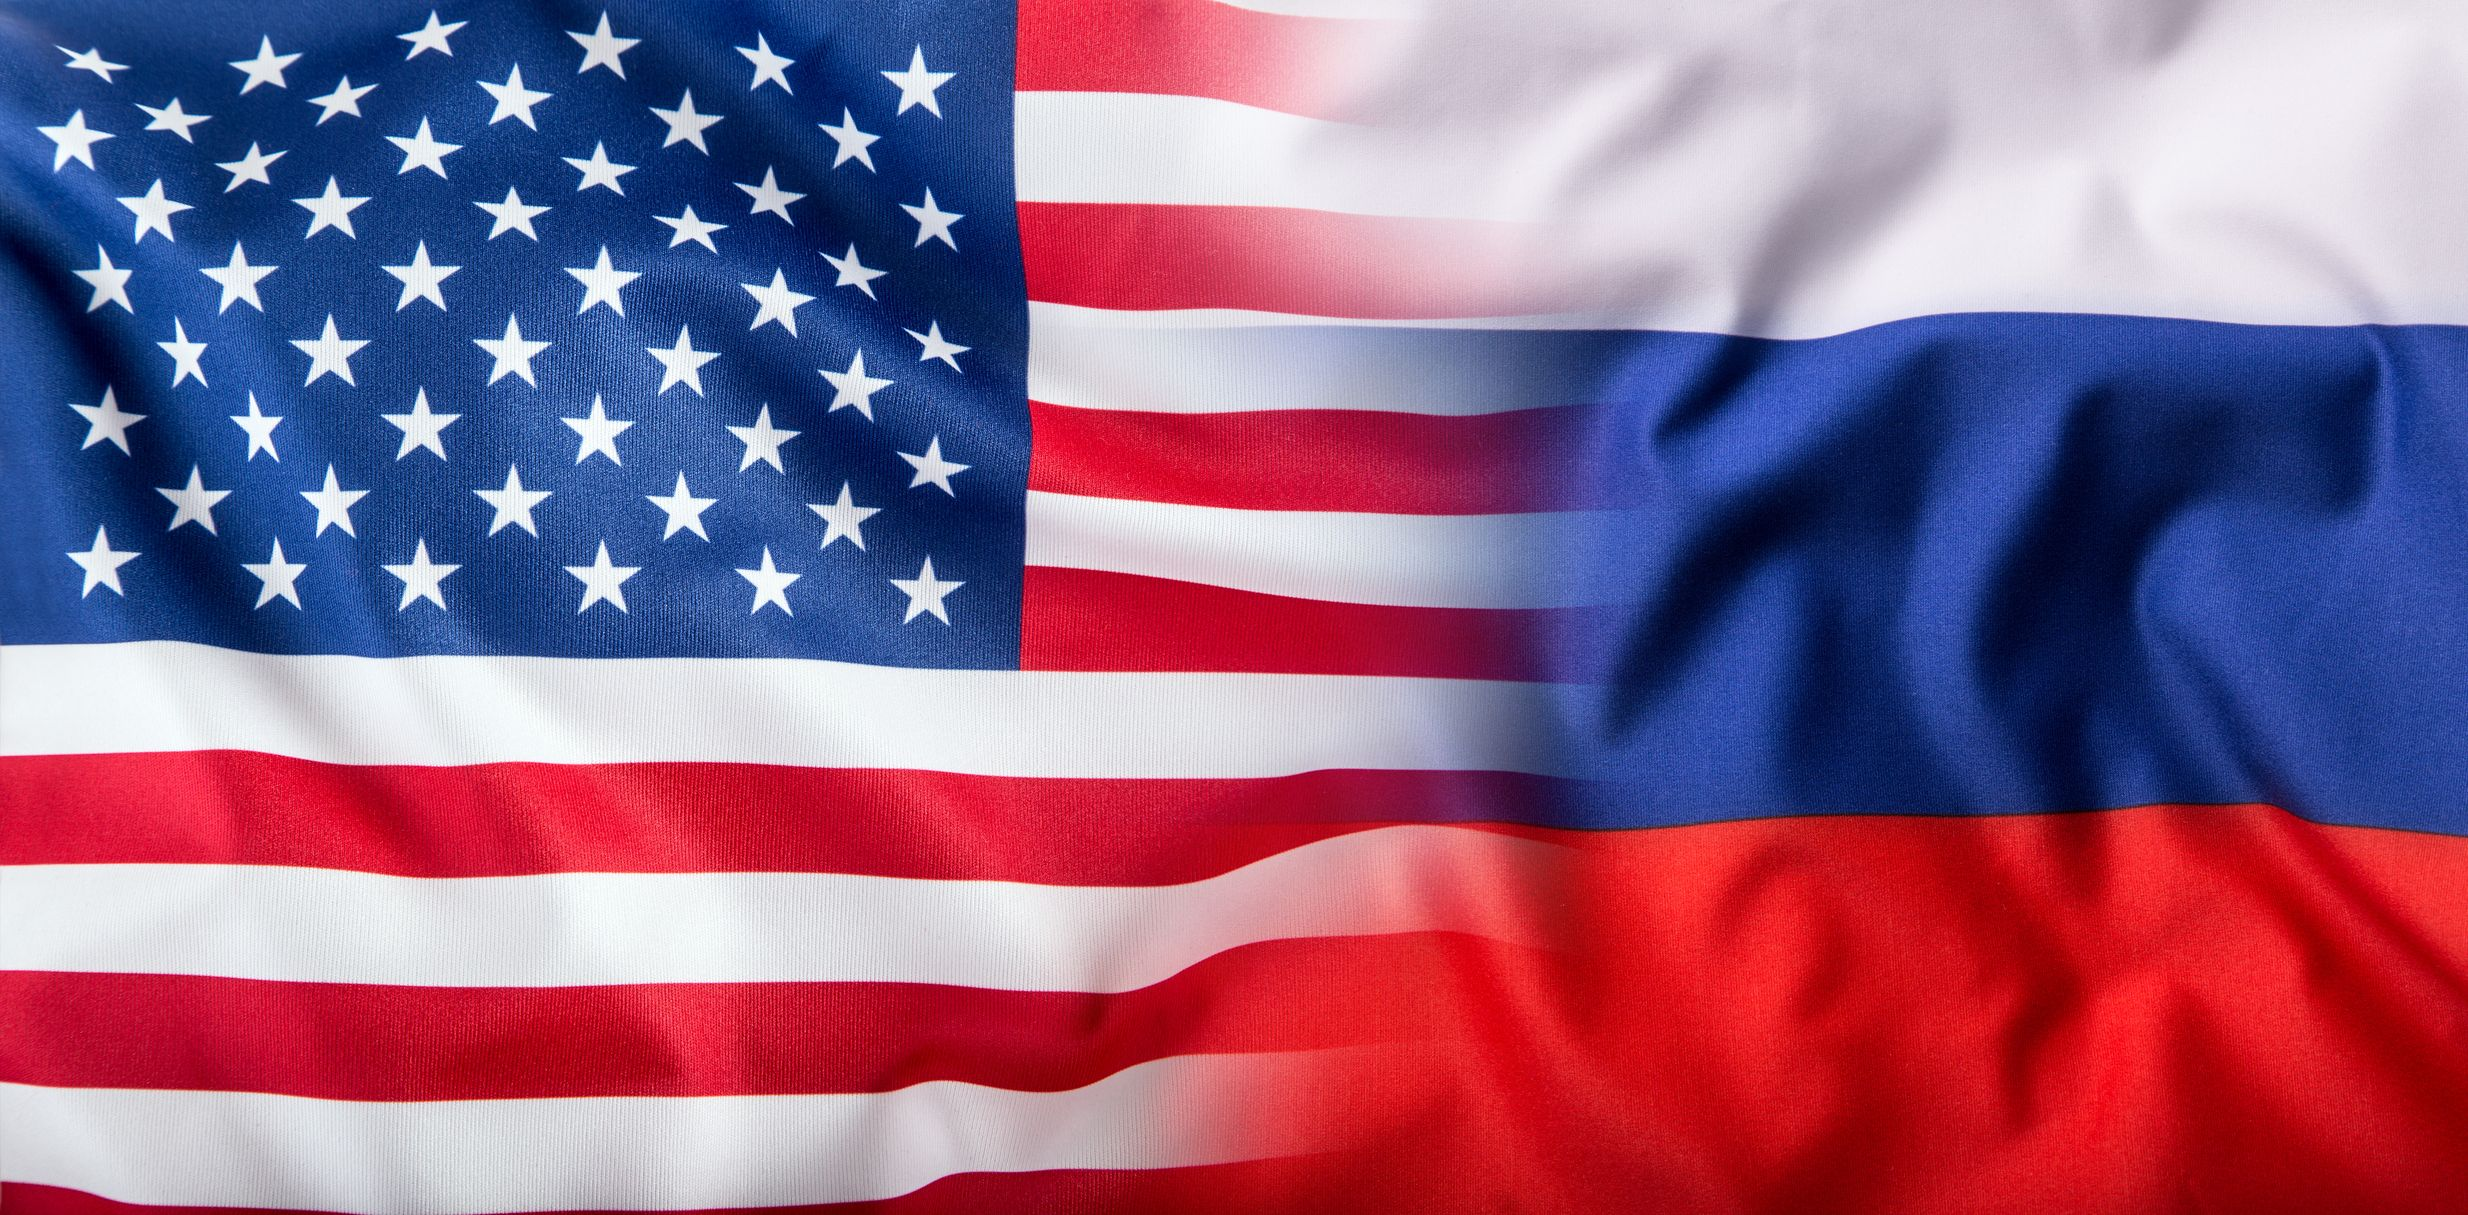 Image Result For Us Russia Flags Russia Flag Flag Image